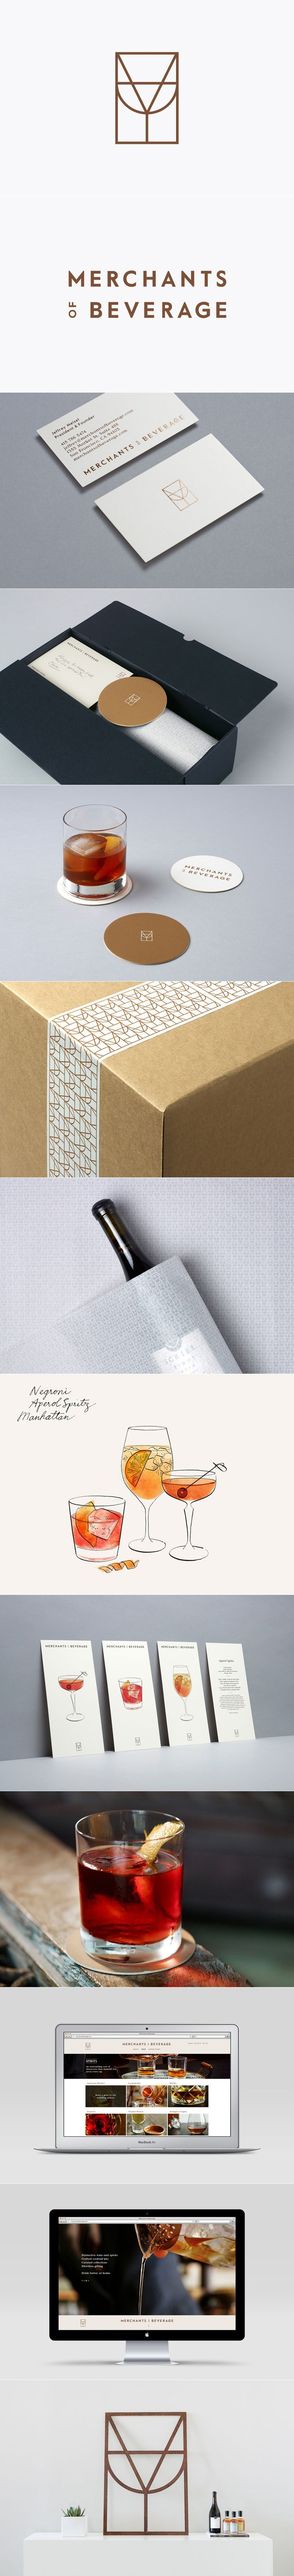 Merchants of Beverage brand by Manual